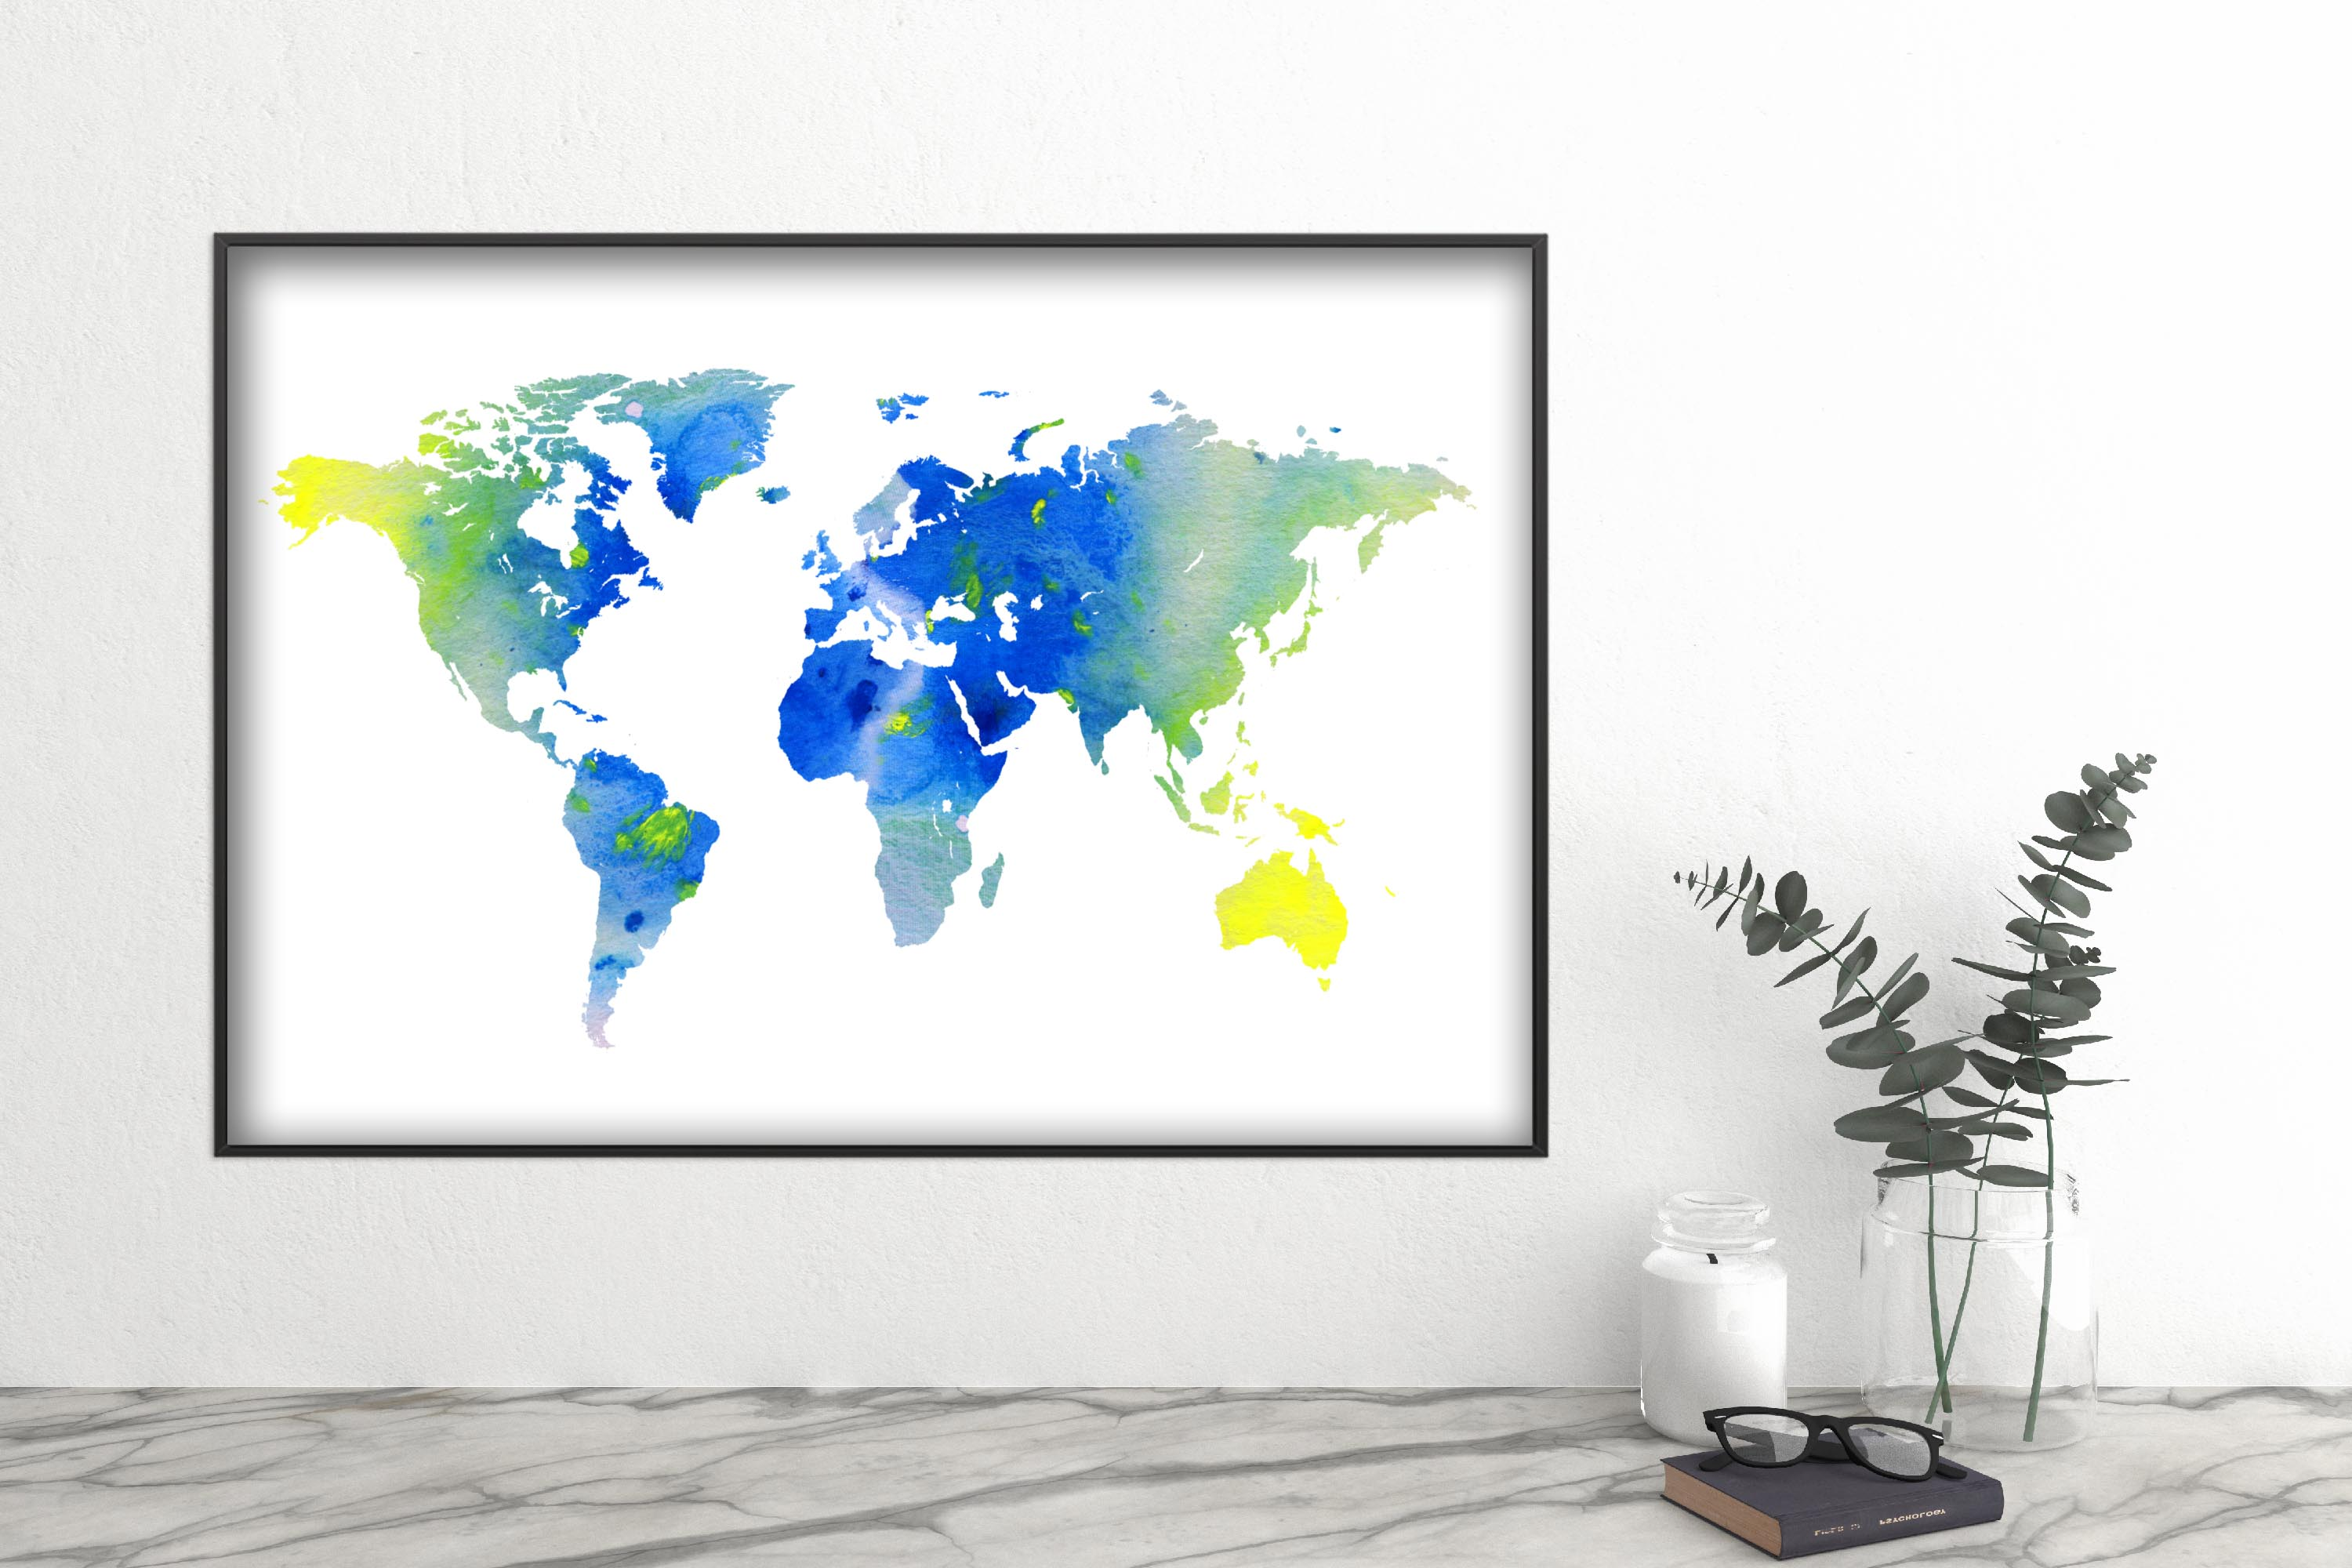 World map wall art printable download files example image 3